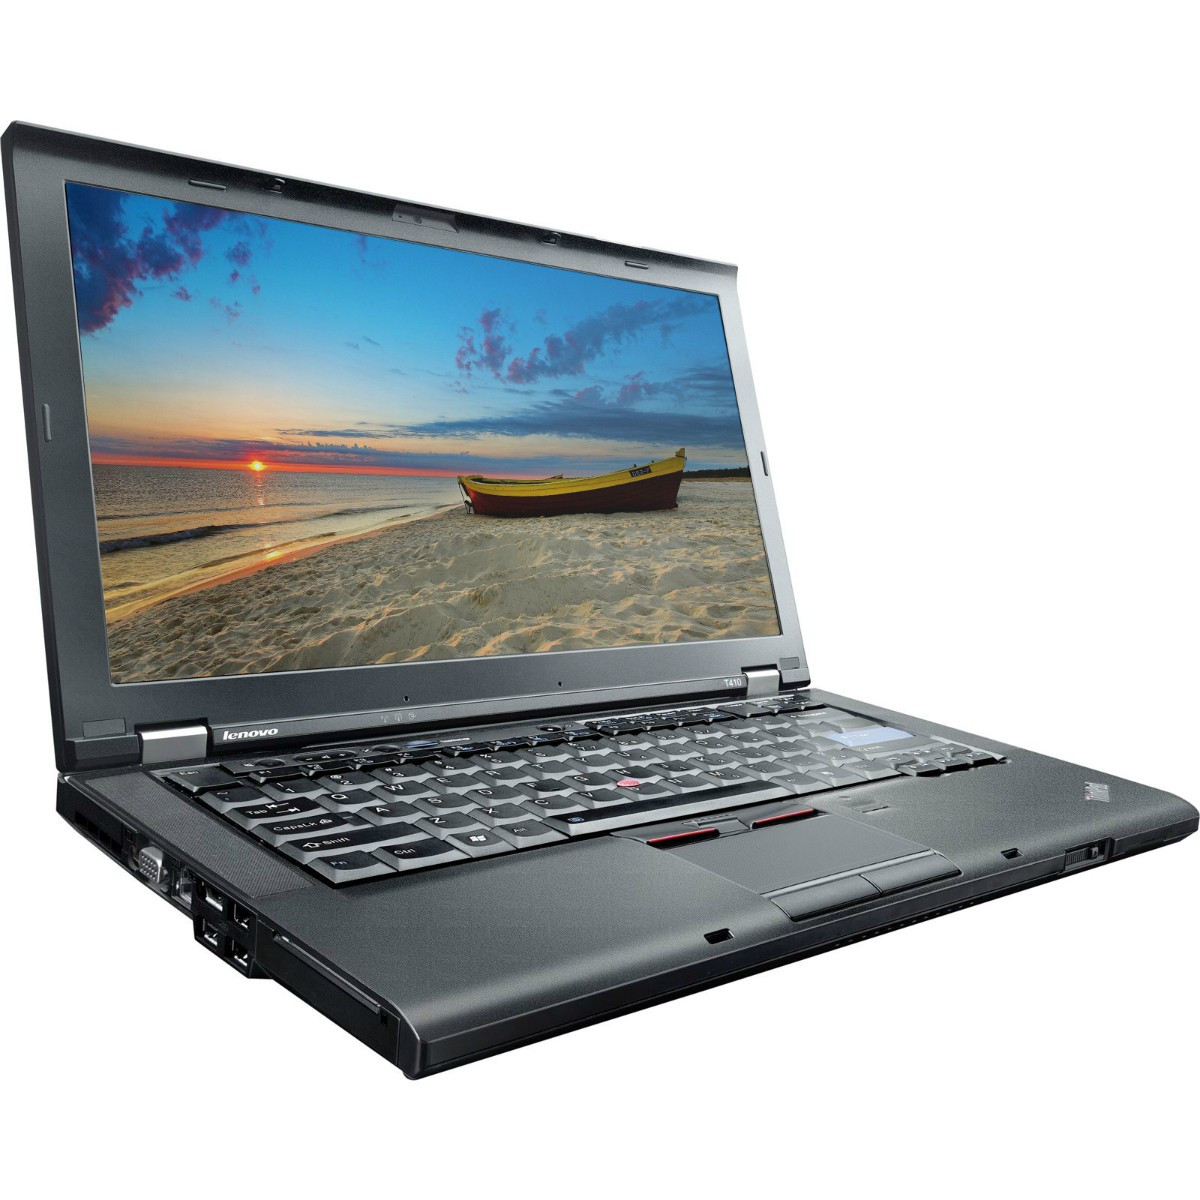 Refurbished Lenovo ThinkPad T410i Core i5 laptop on SALE